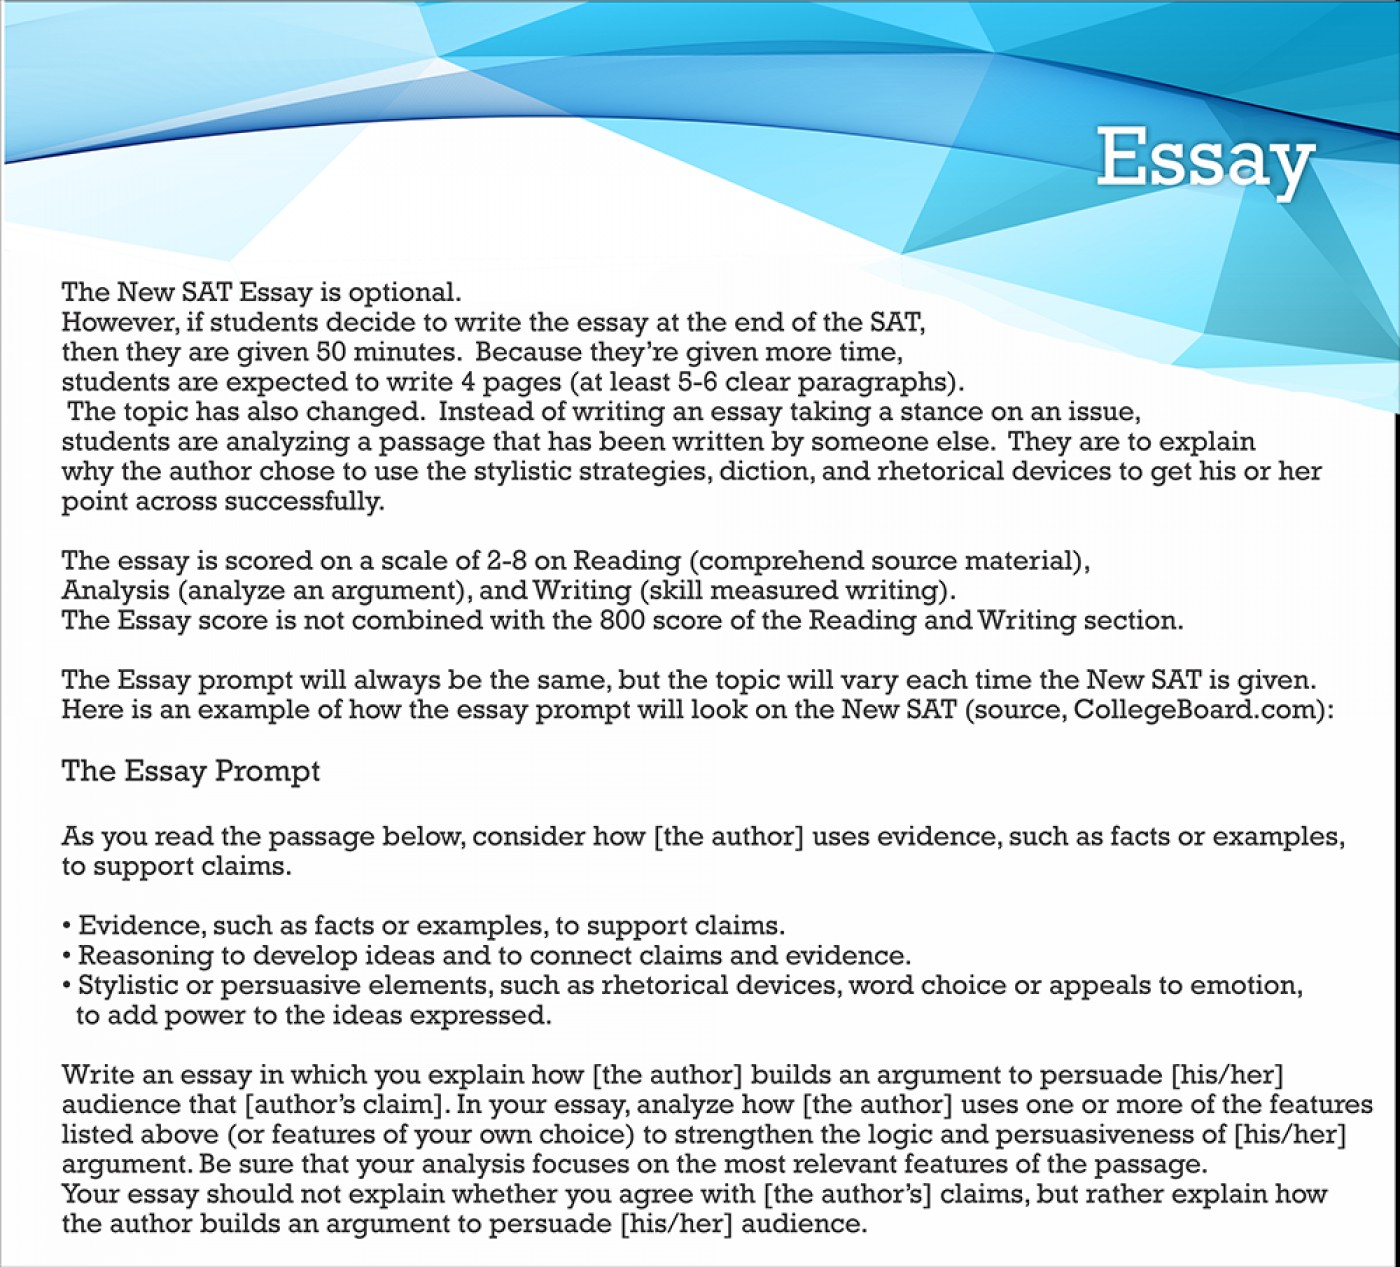 016 Essay Example Sat Stirring Score Release Average Uc Berkeley For Harvard 1400